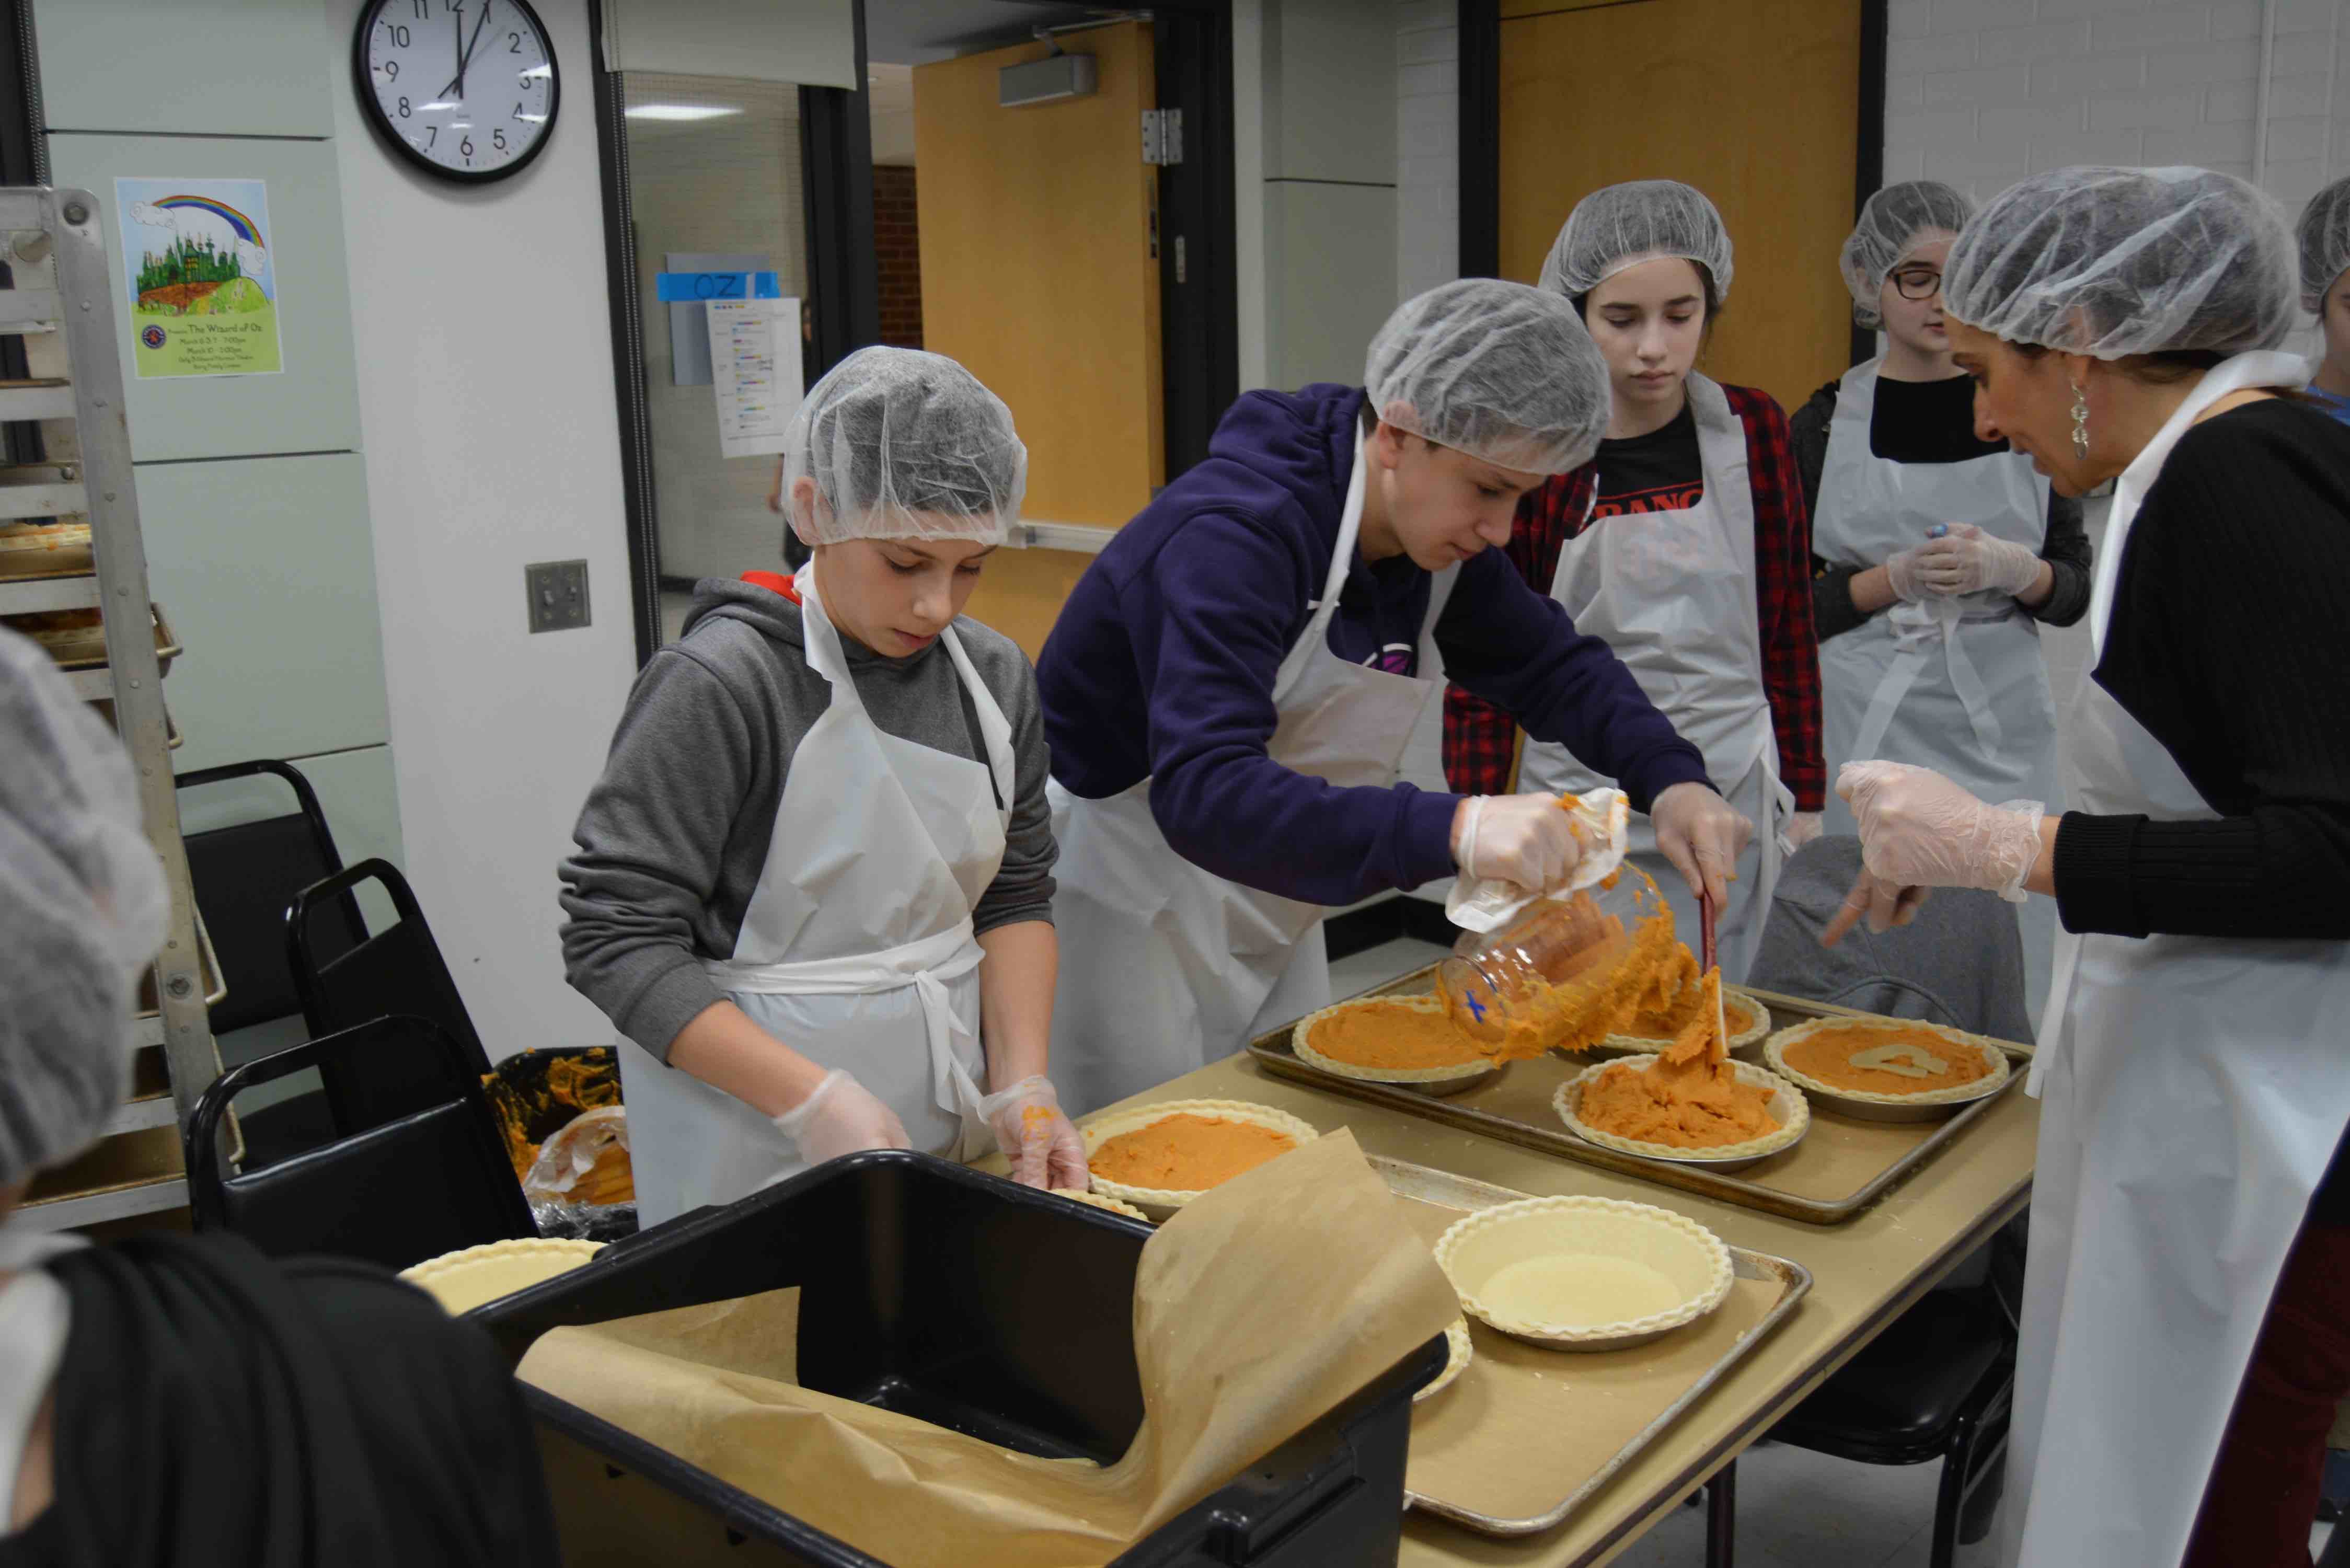 Students baking pies